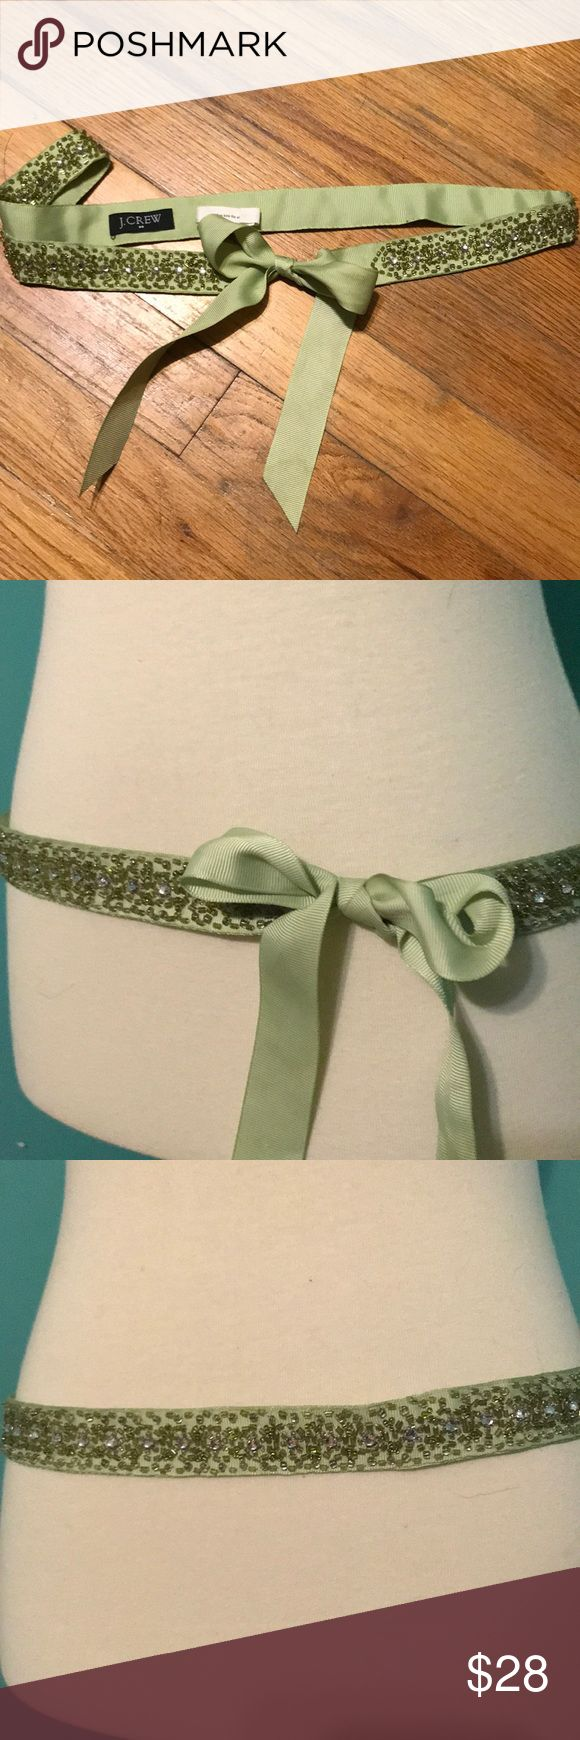 J crew sparkly beaded ribbon belt green Sparkling beaded green ribbon belt   One small imperfection on inside of green belt - please see last photo   Never worn, been sitting in closet  Light green J. Crew Accessories Belts